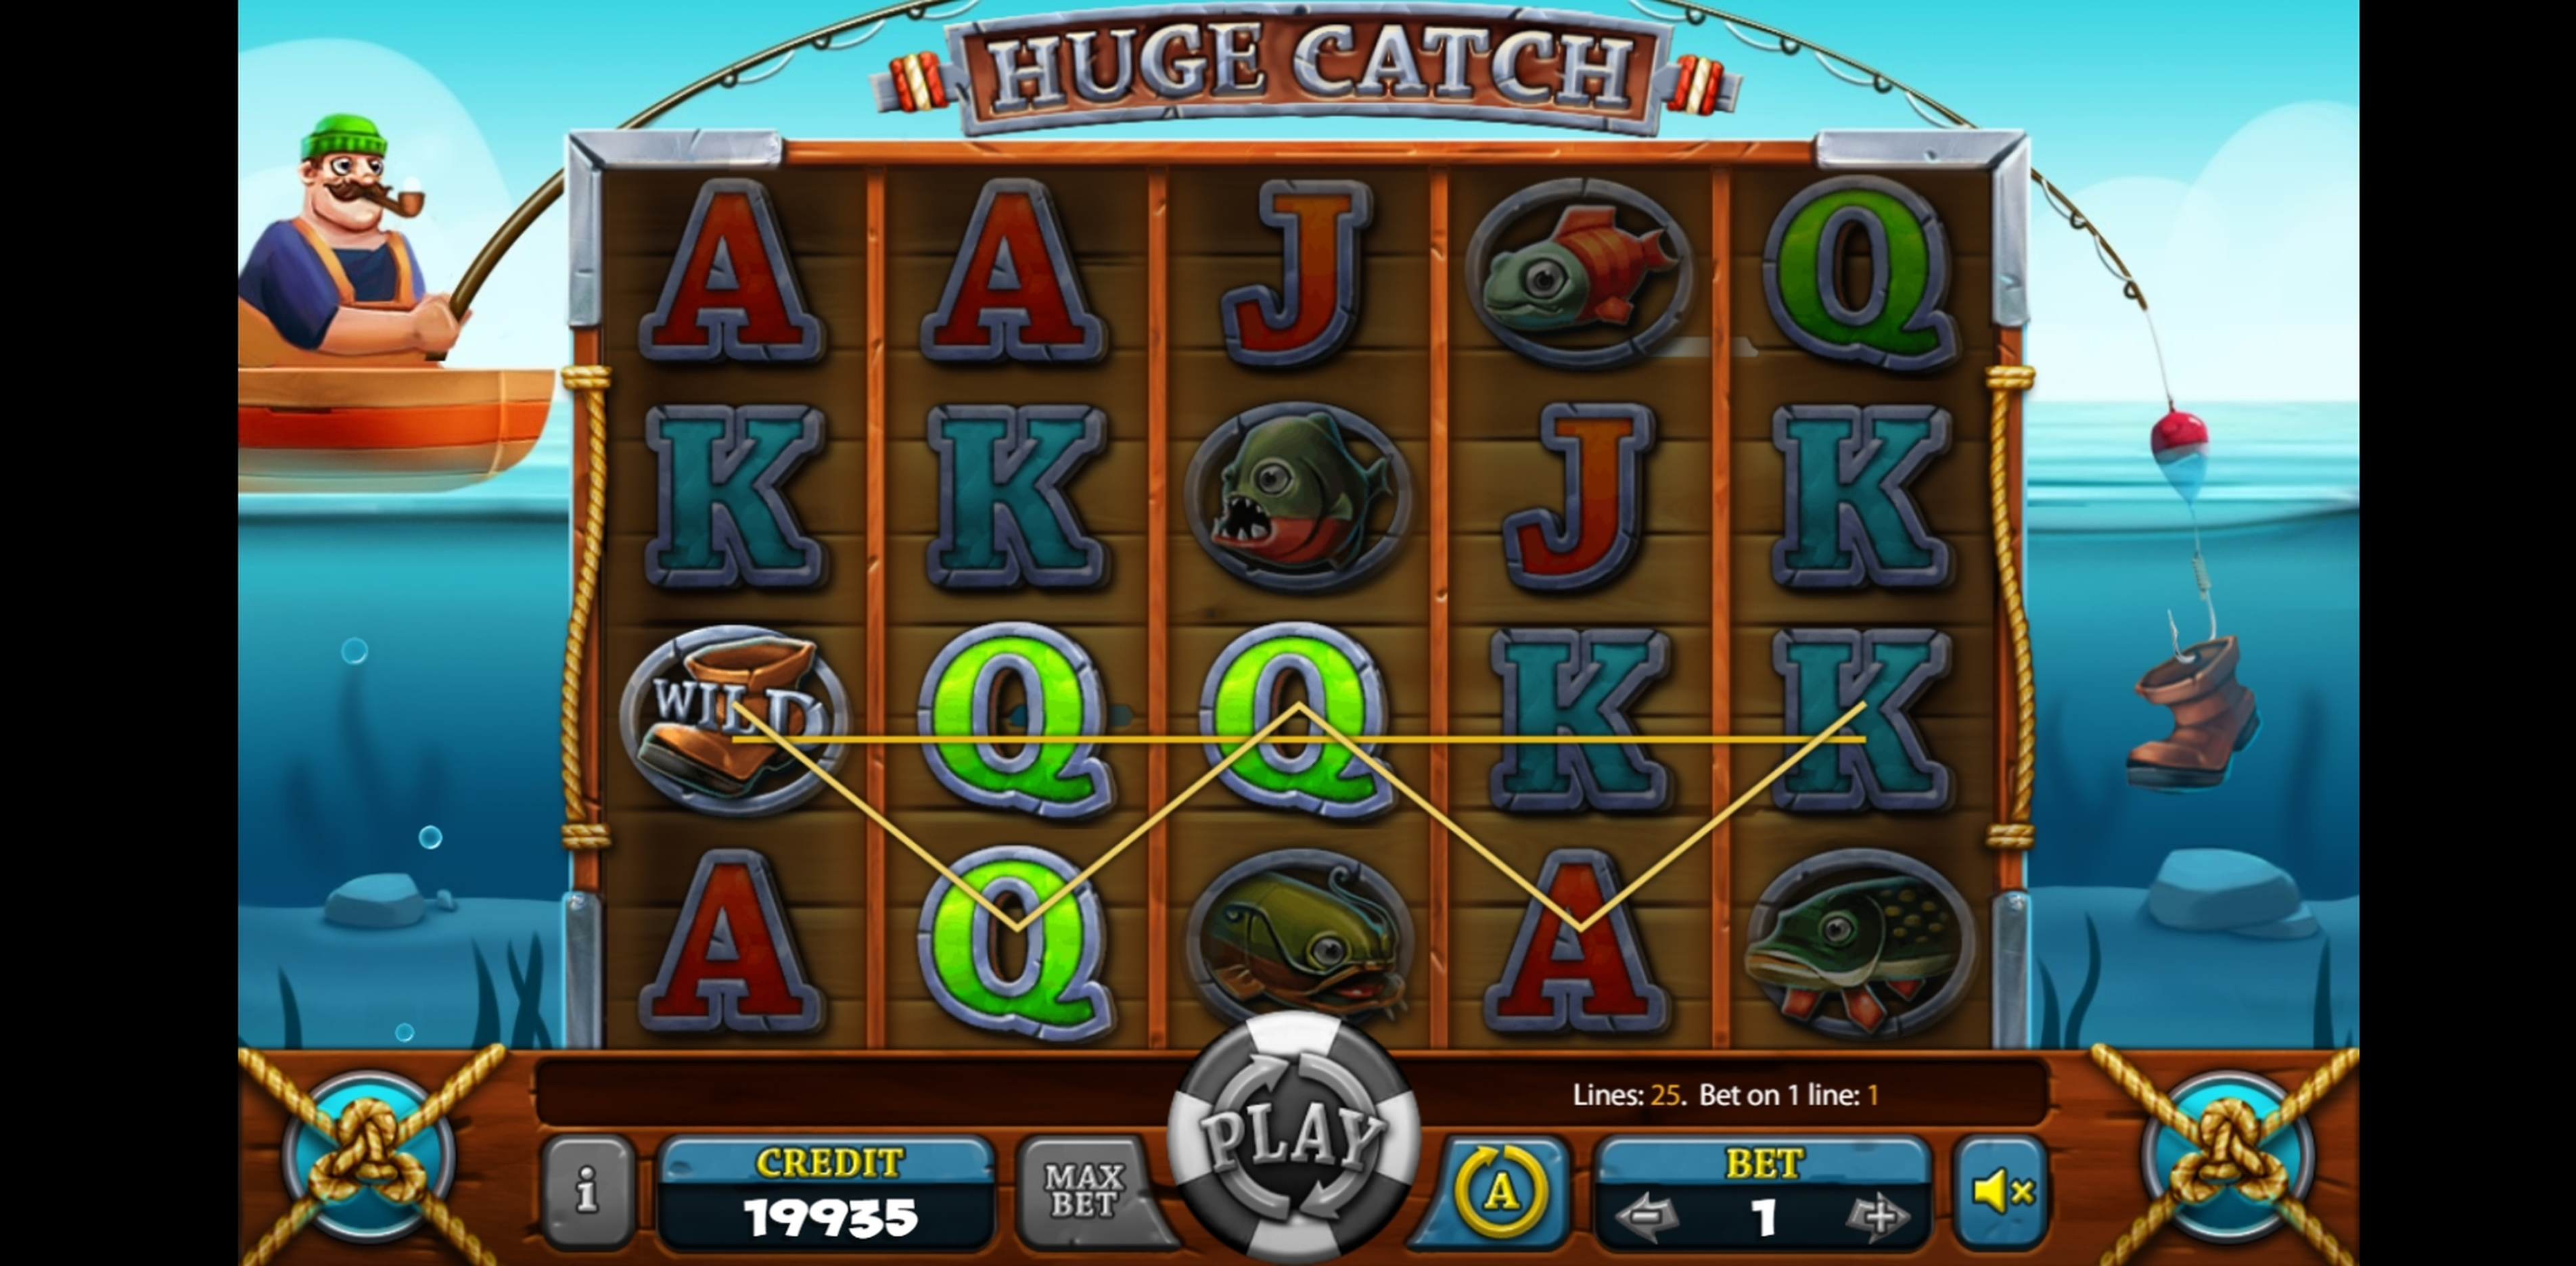 Win Money in Huge Catch Free Slot Game by X Card